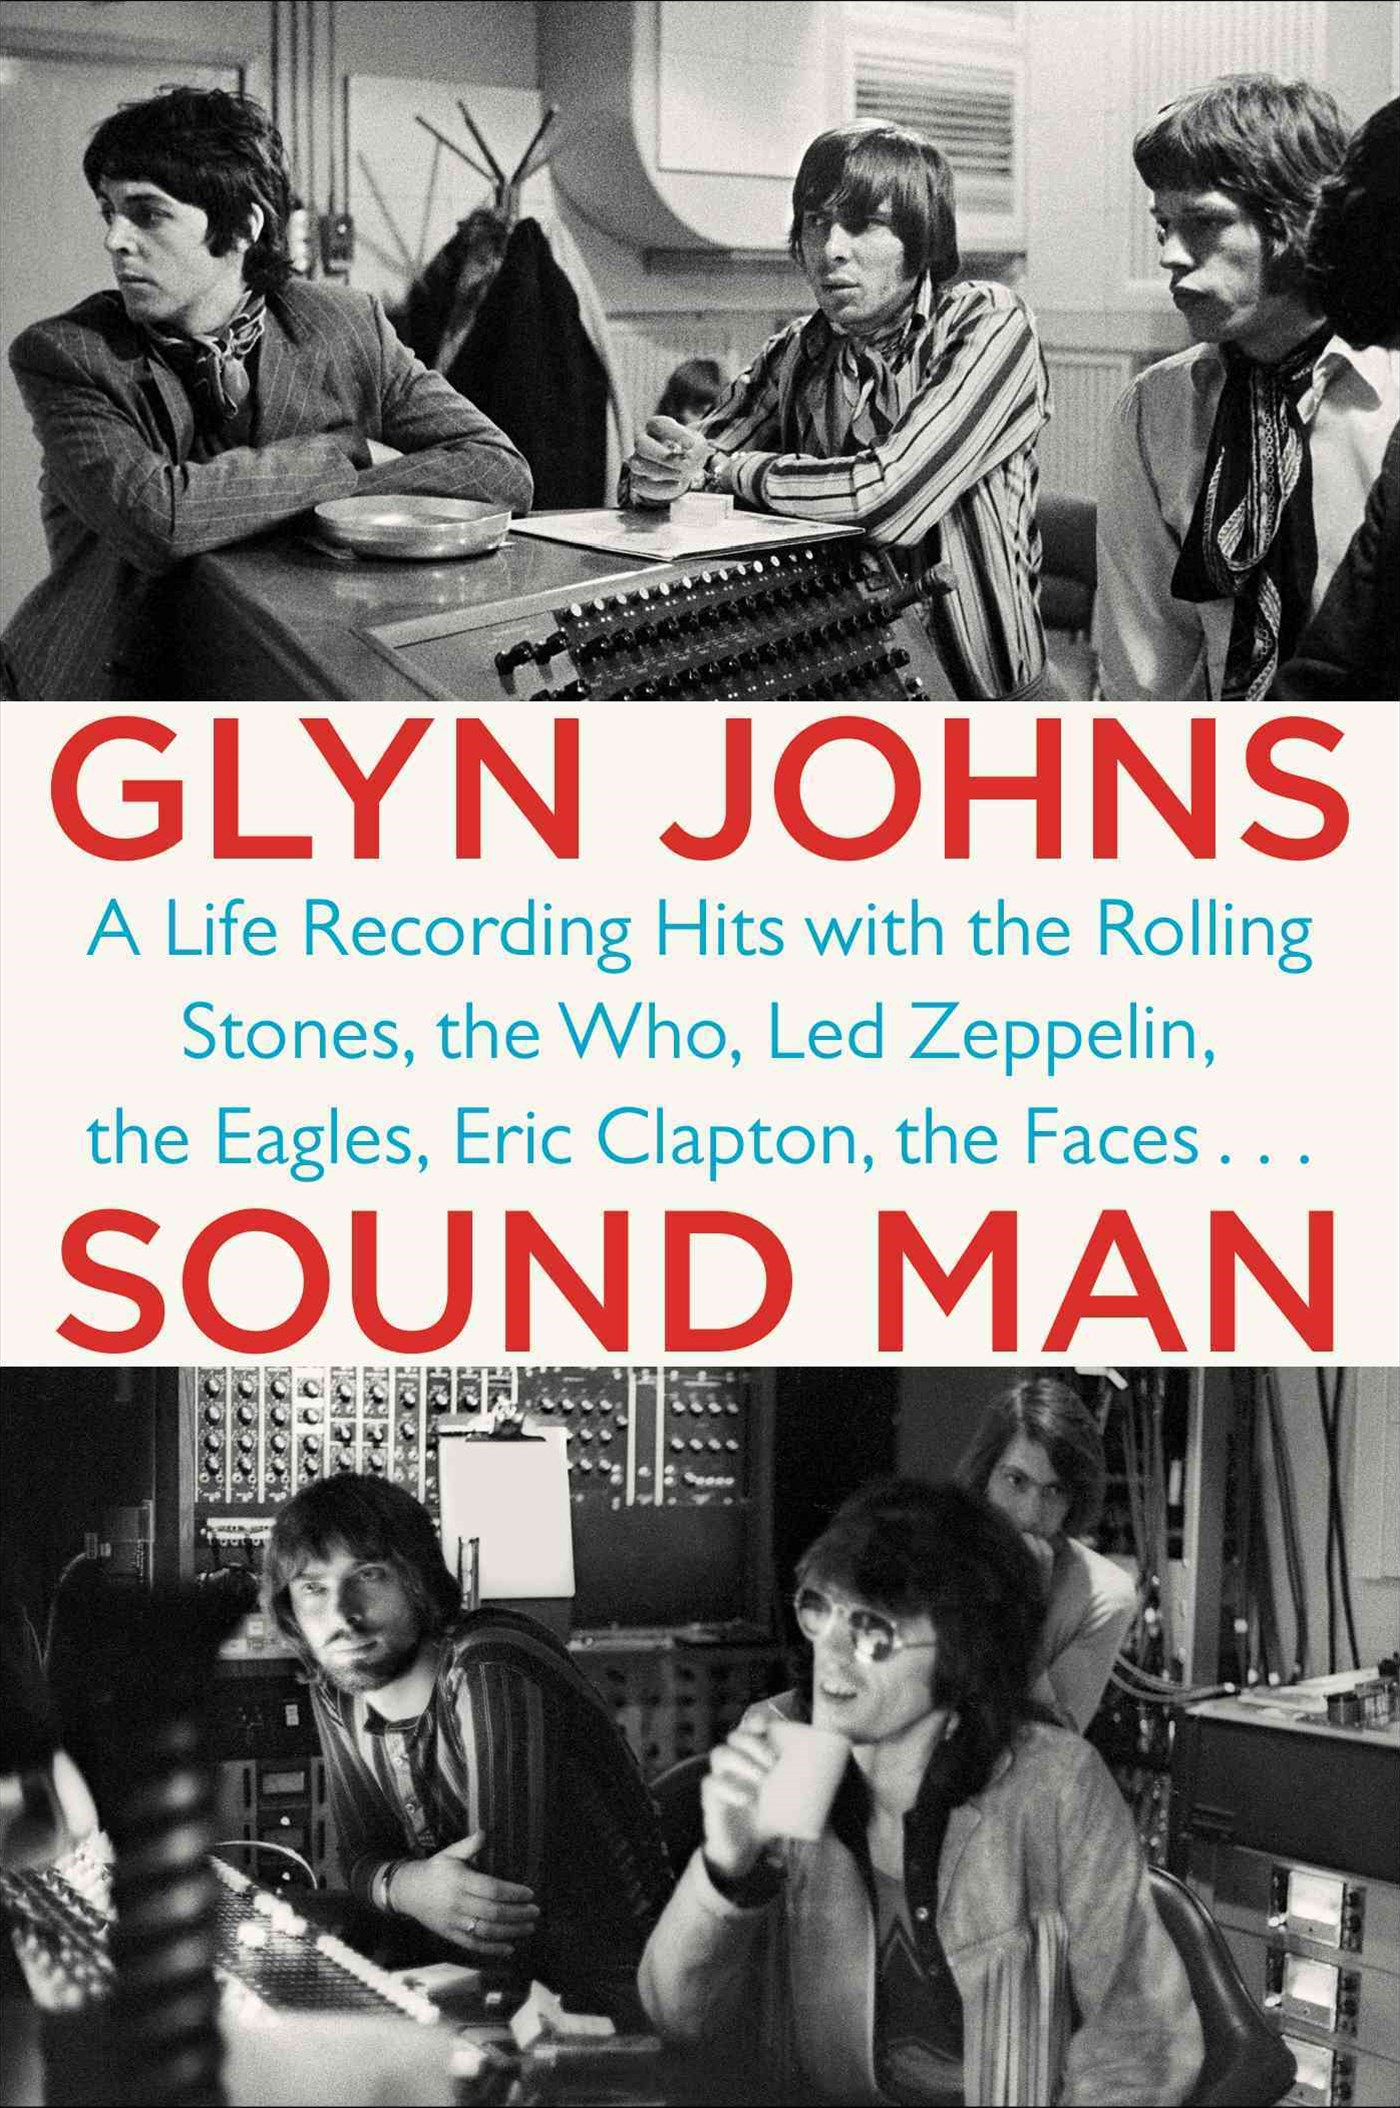 Sound Man: A Life Recording Hits With The Rolling Stones, The Who, Led Zeppelin, The Eagles , Eric Clapton, The Faces...